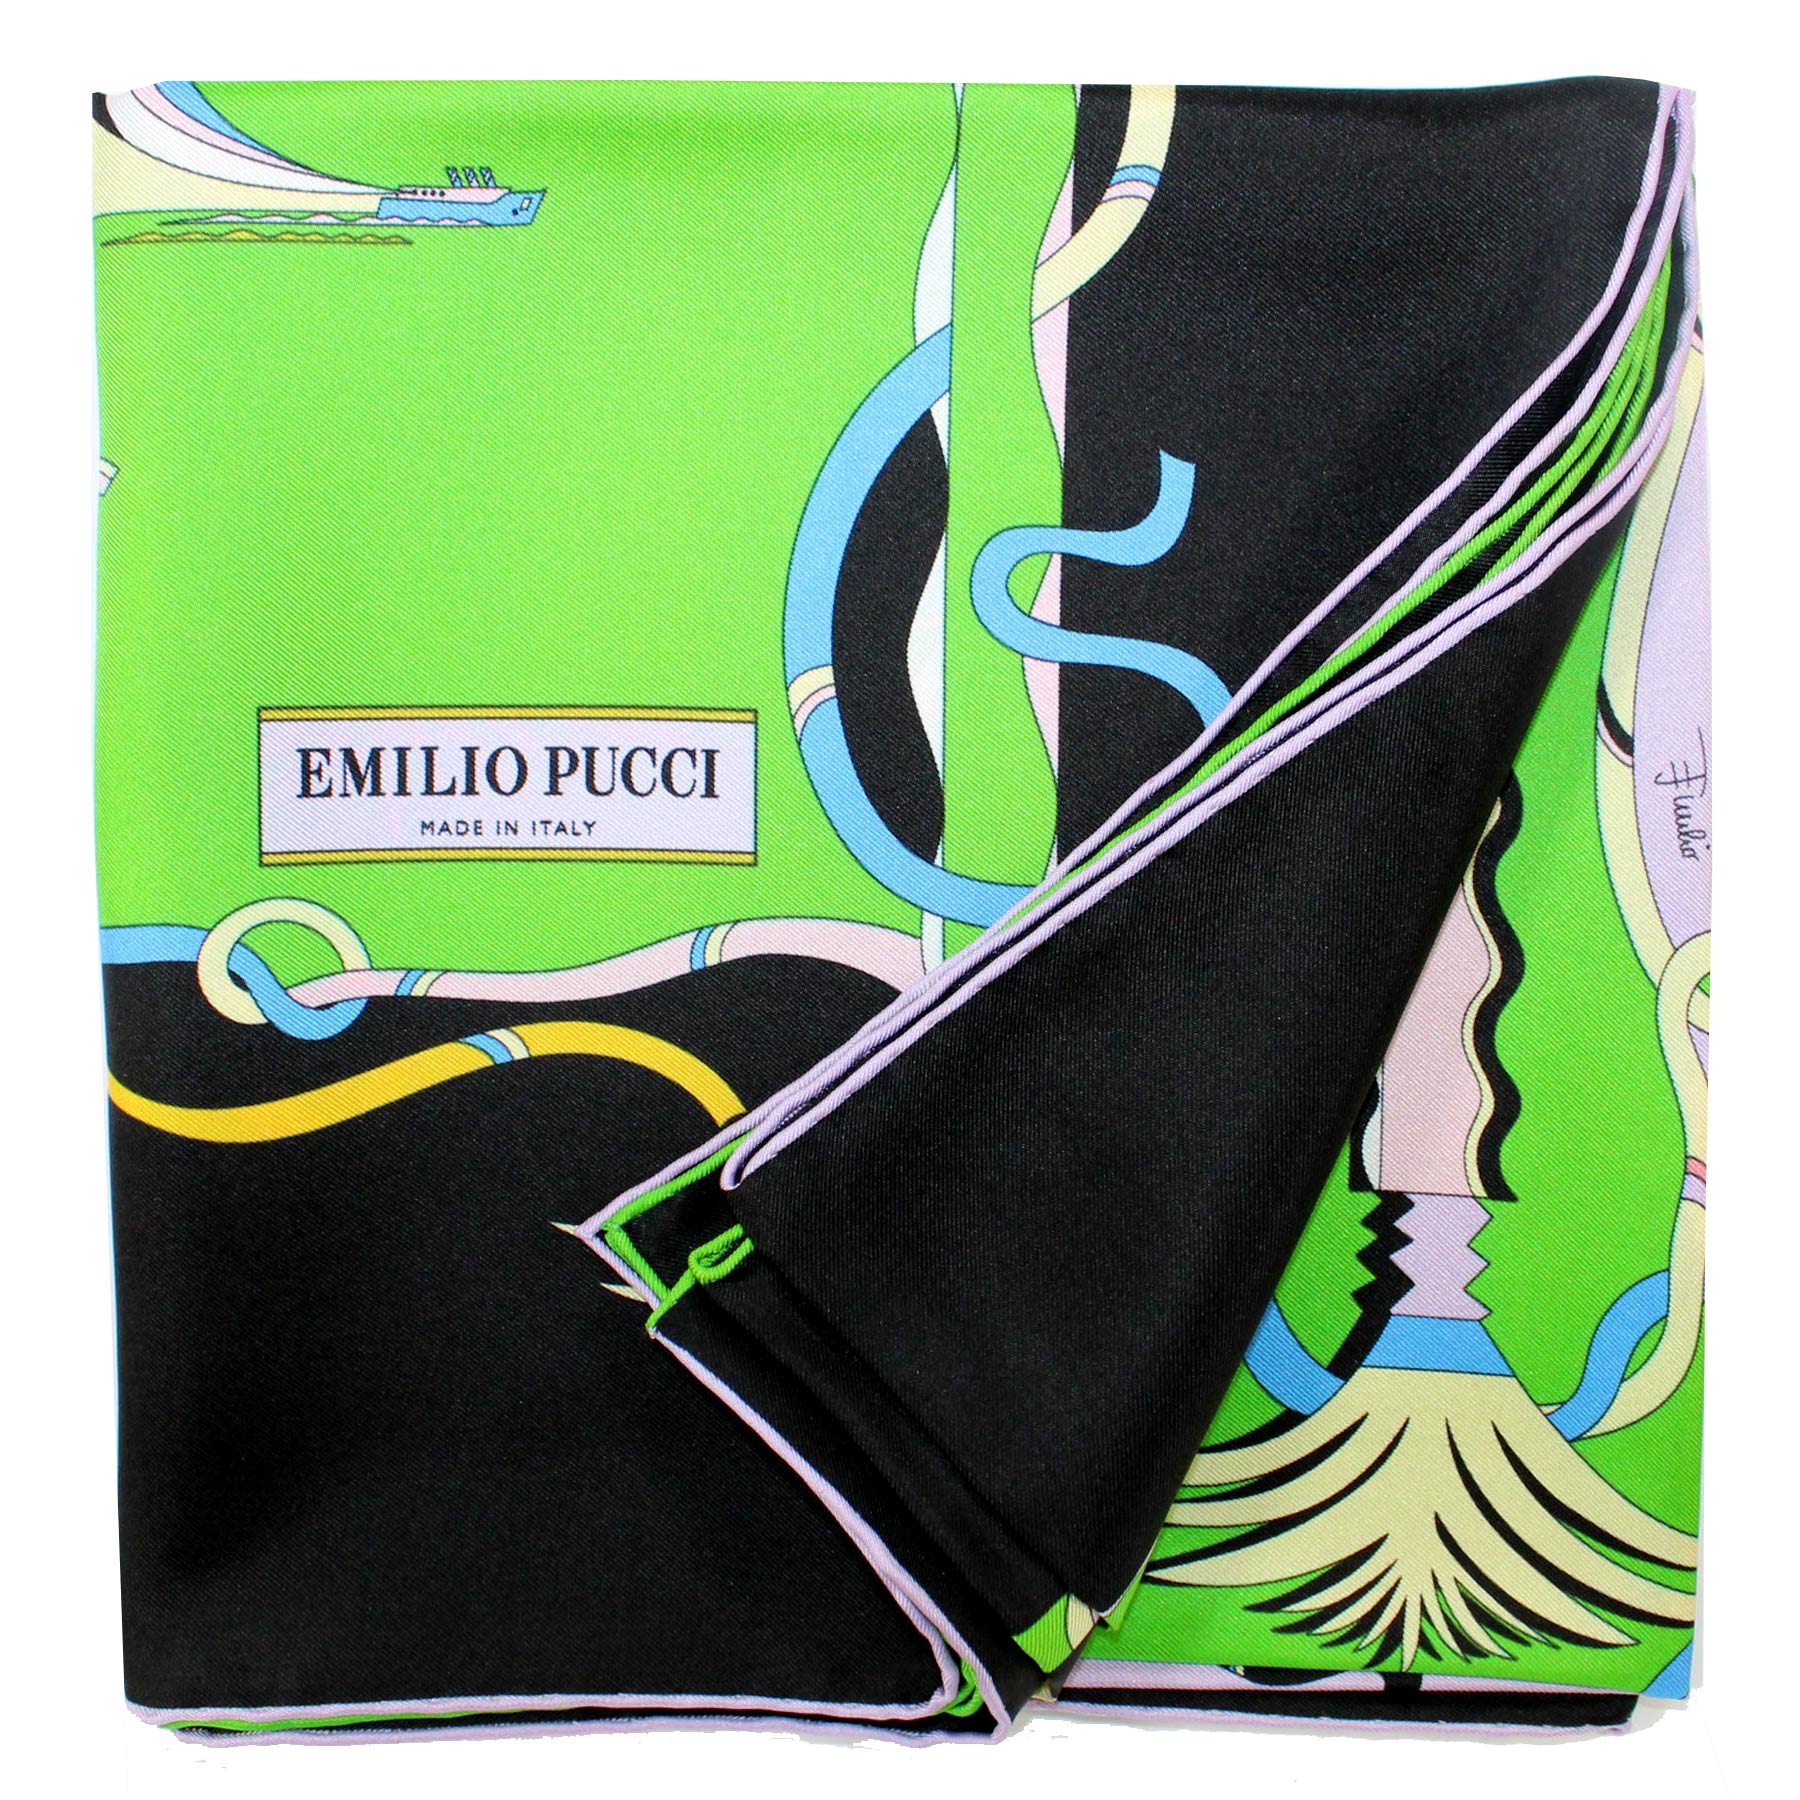 Emilio Pucci Scarf Paradise Black Lime Lavender - Large Twill Silk Square Scarf SALE